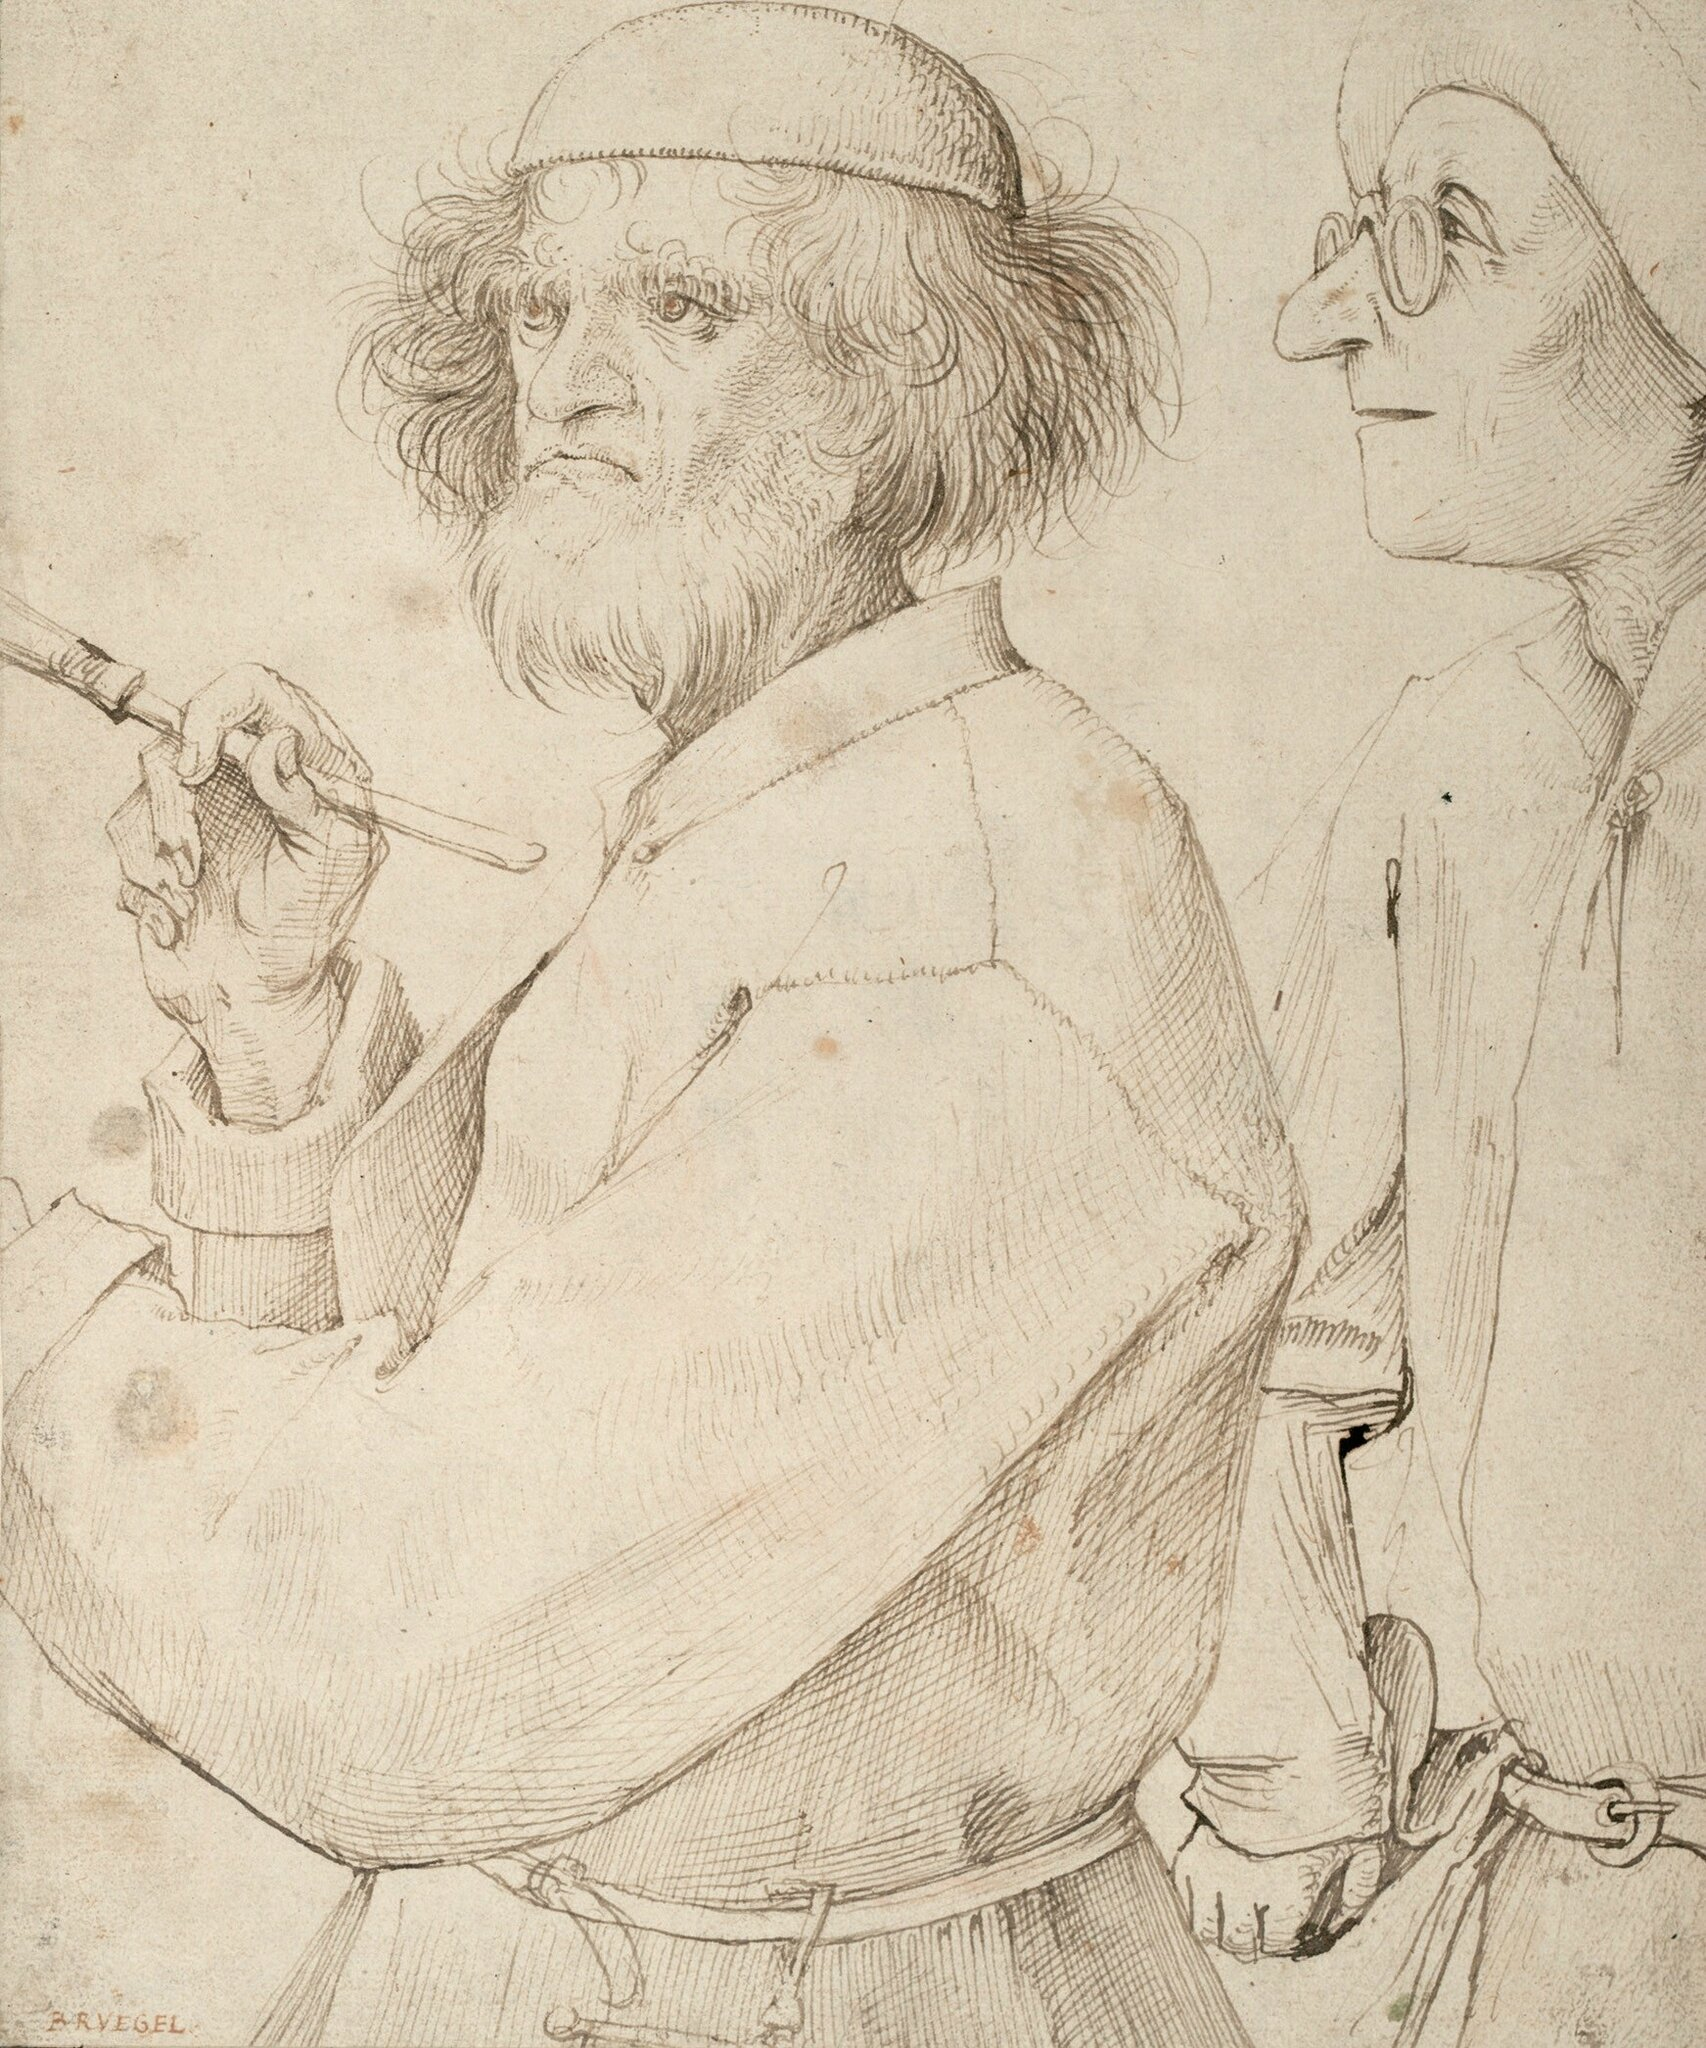 'Bruegel. Drawing the World' at the Albertina